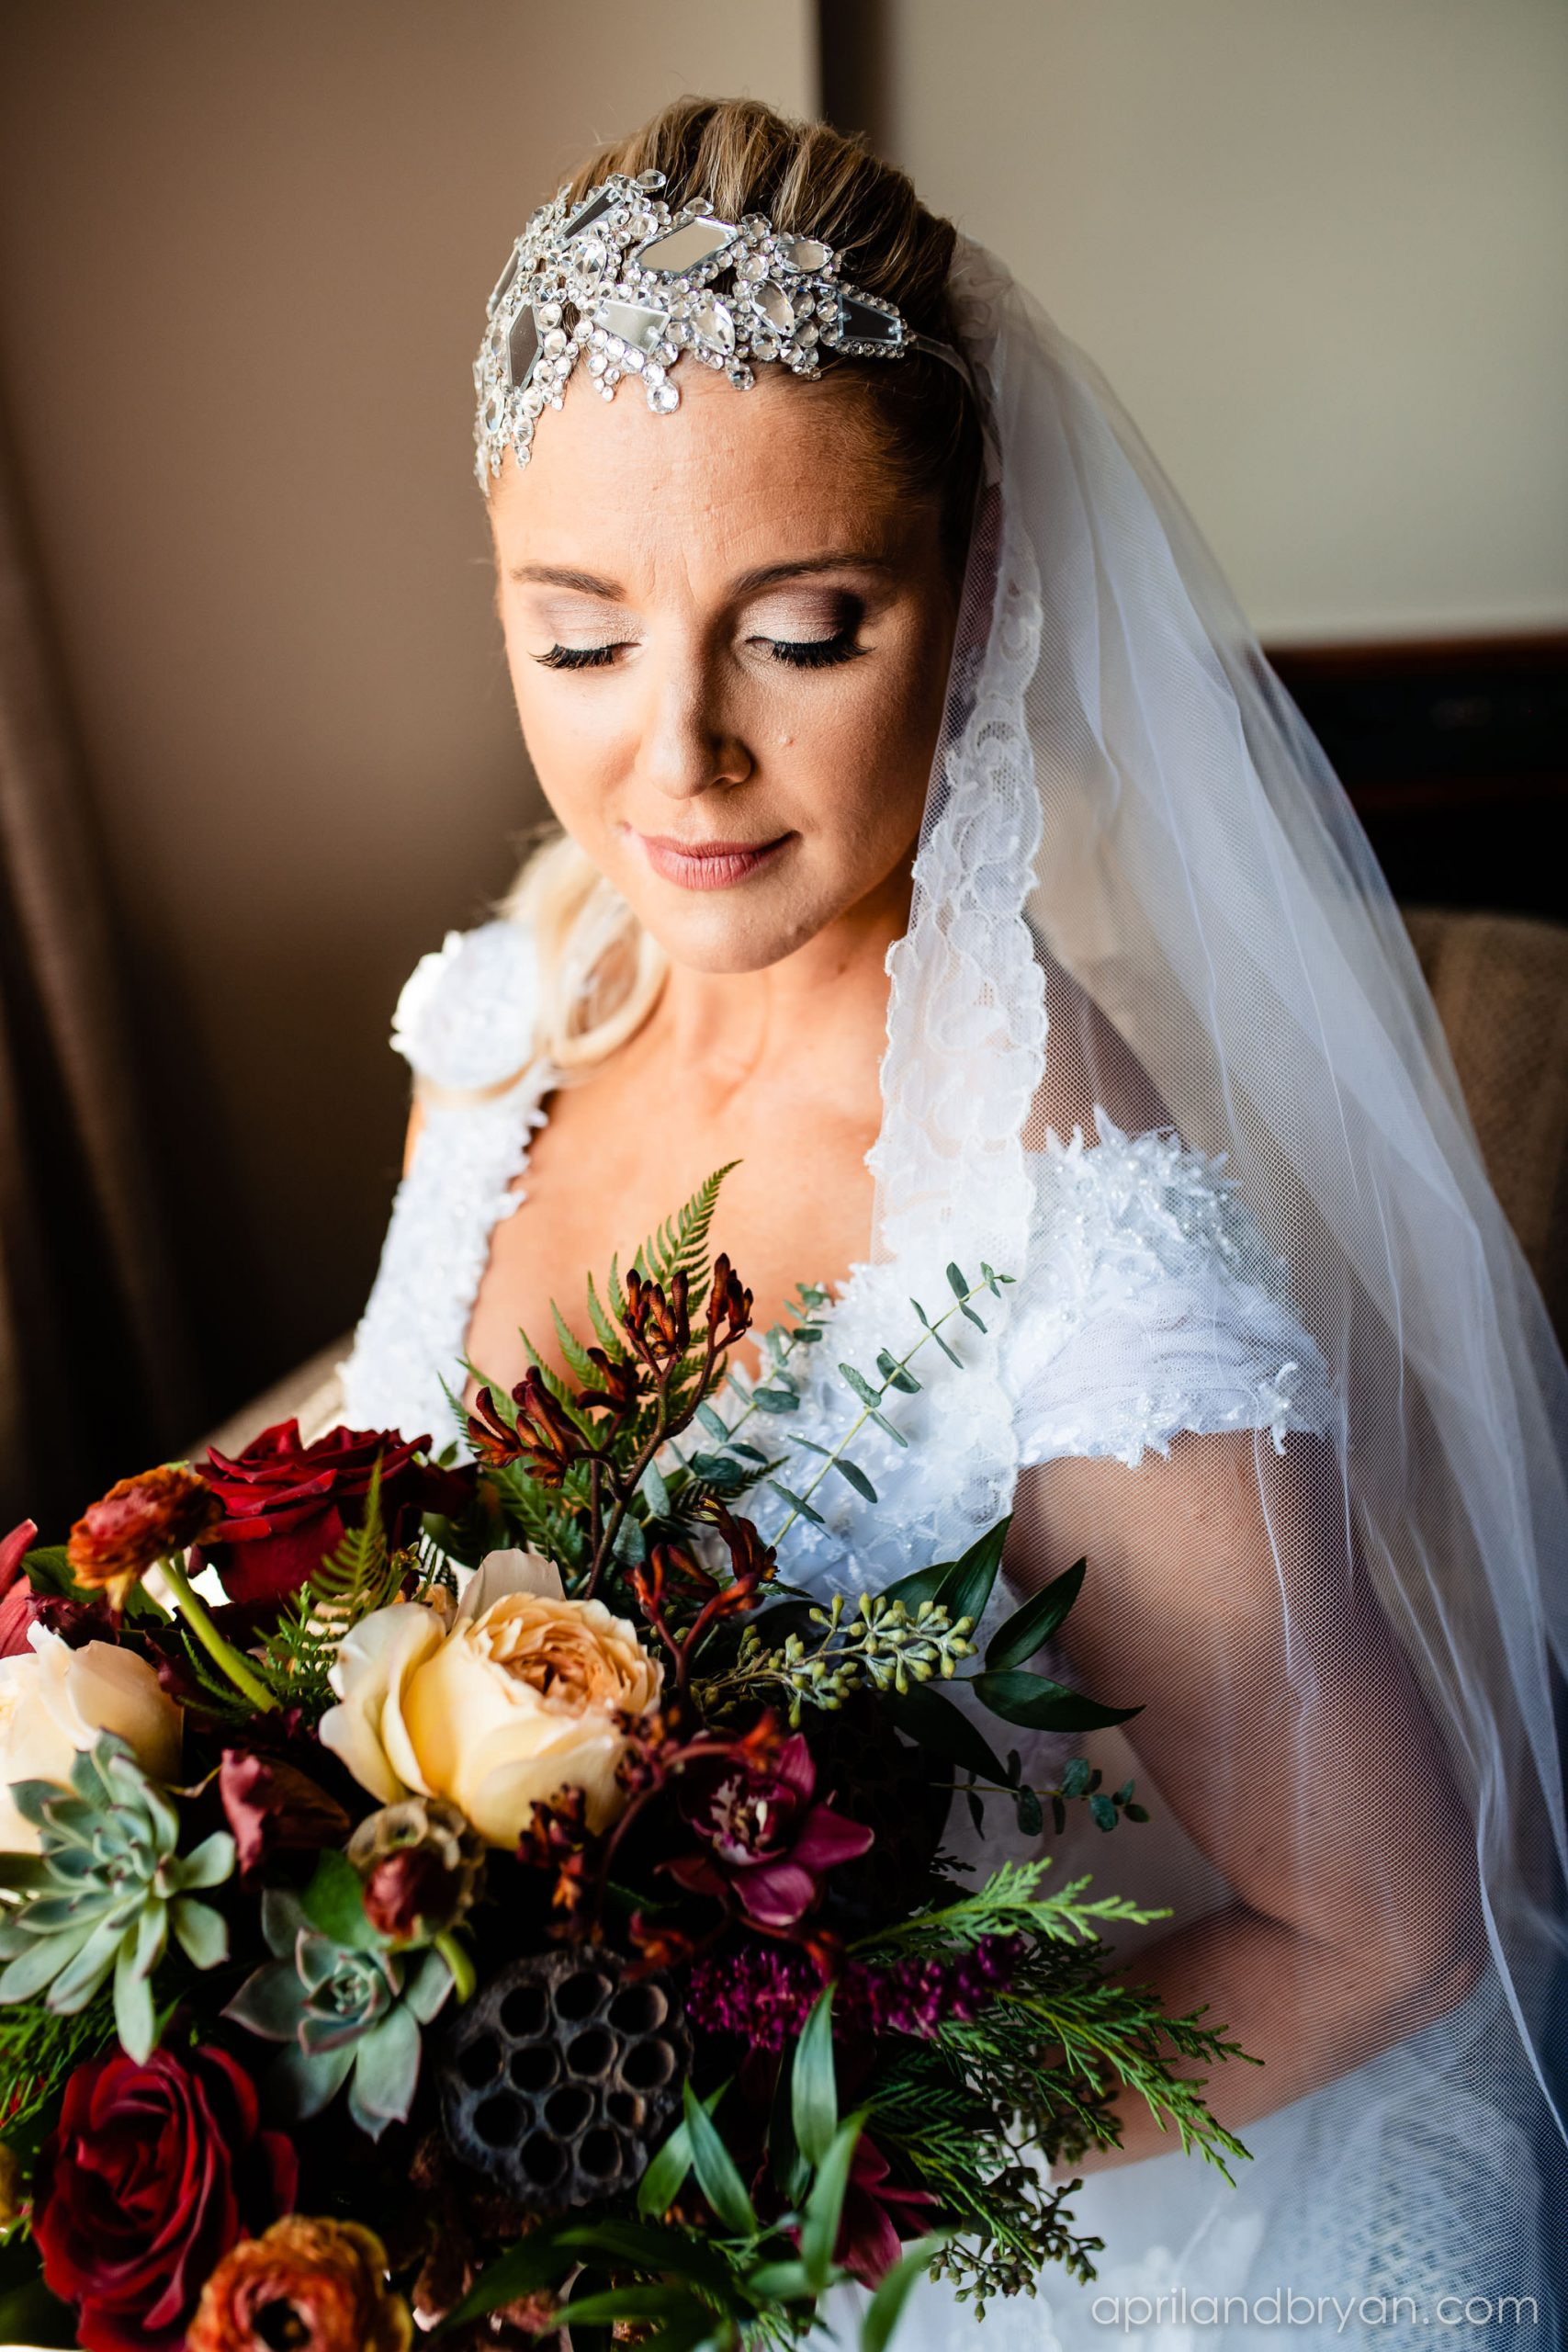 The bride is ready to walk down the isle. makeup done and a bedazzling head piece to match, Rebecca is ready. Nicholas and Rebecca Fasnacht tie the not at Tellus360 on November 1, 2019. Captured by April & Bryan Photography and featured on Dream Weddings.